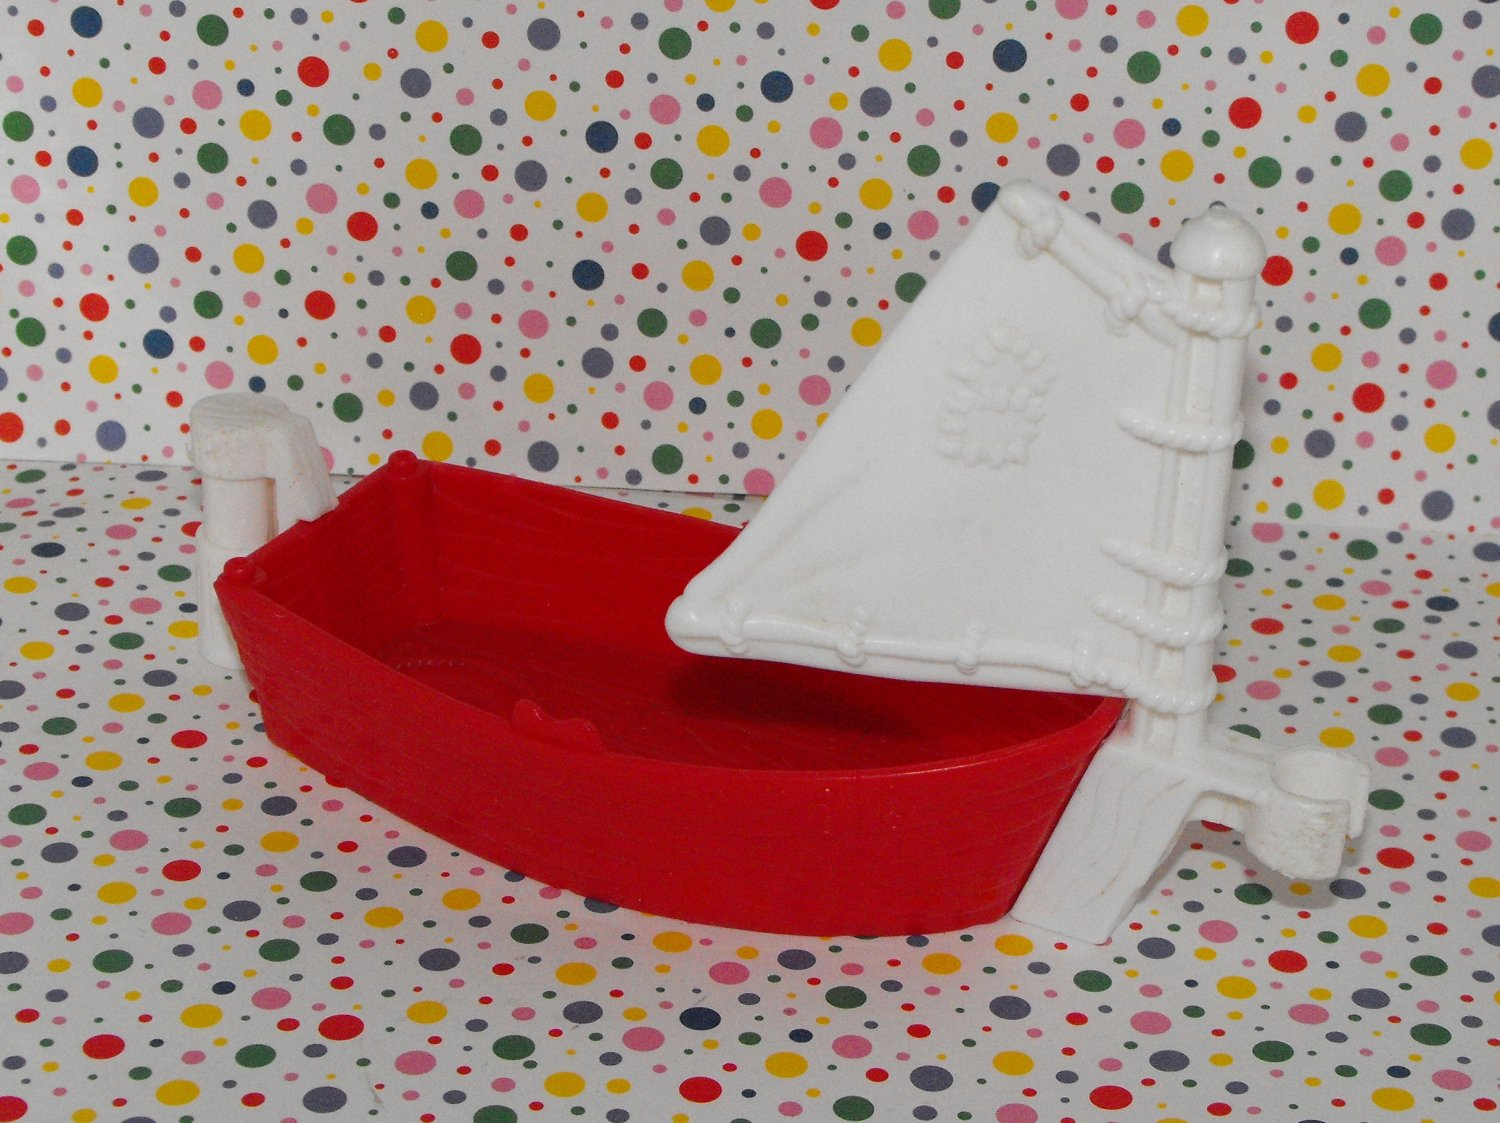 *SOLD~Awaiting Feedback~Fisher Price Little People Lil' Sea Skiff Sailboat Part